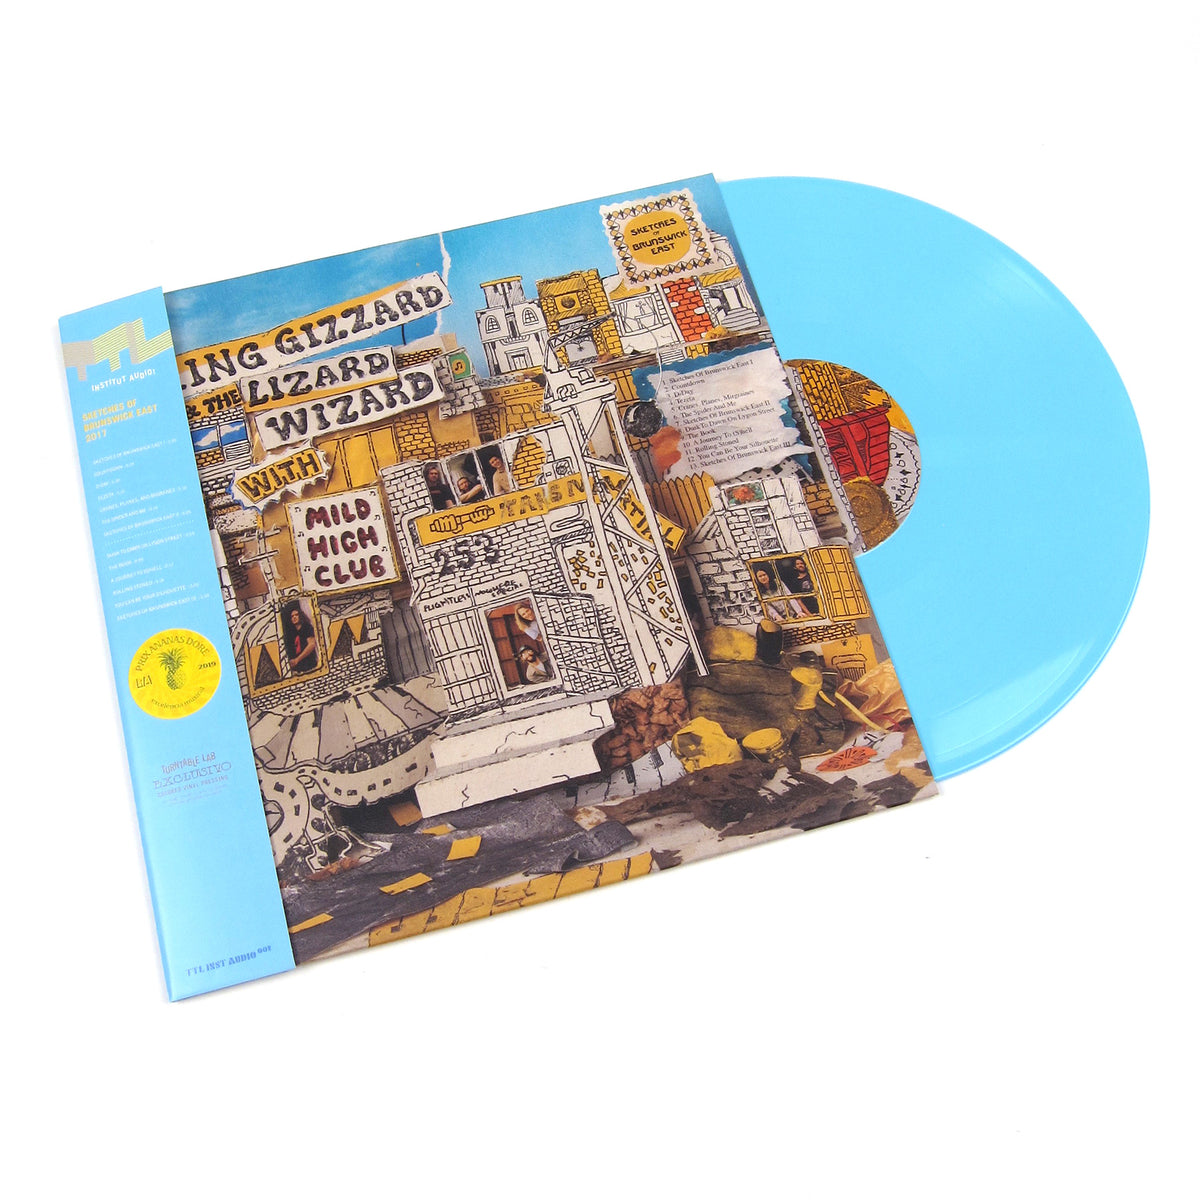 King Gizzard And The Lizard Wizard With Mild High Club: Sketches Of Brunswick East (Colored Vinyl) Vinyl LP - Turntable Lab Exclusive - LIMIT 1 PER CUSTOMER